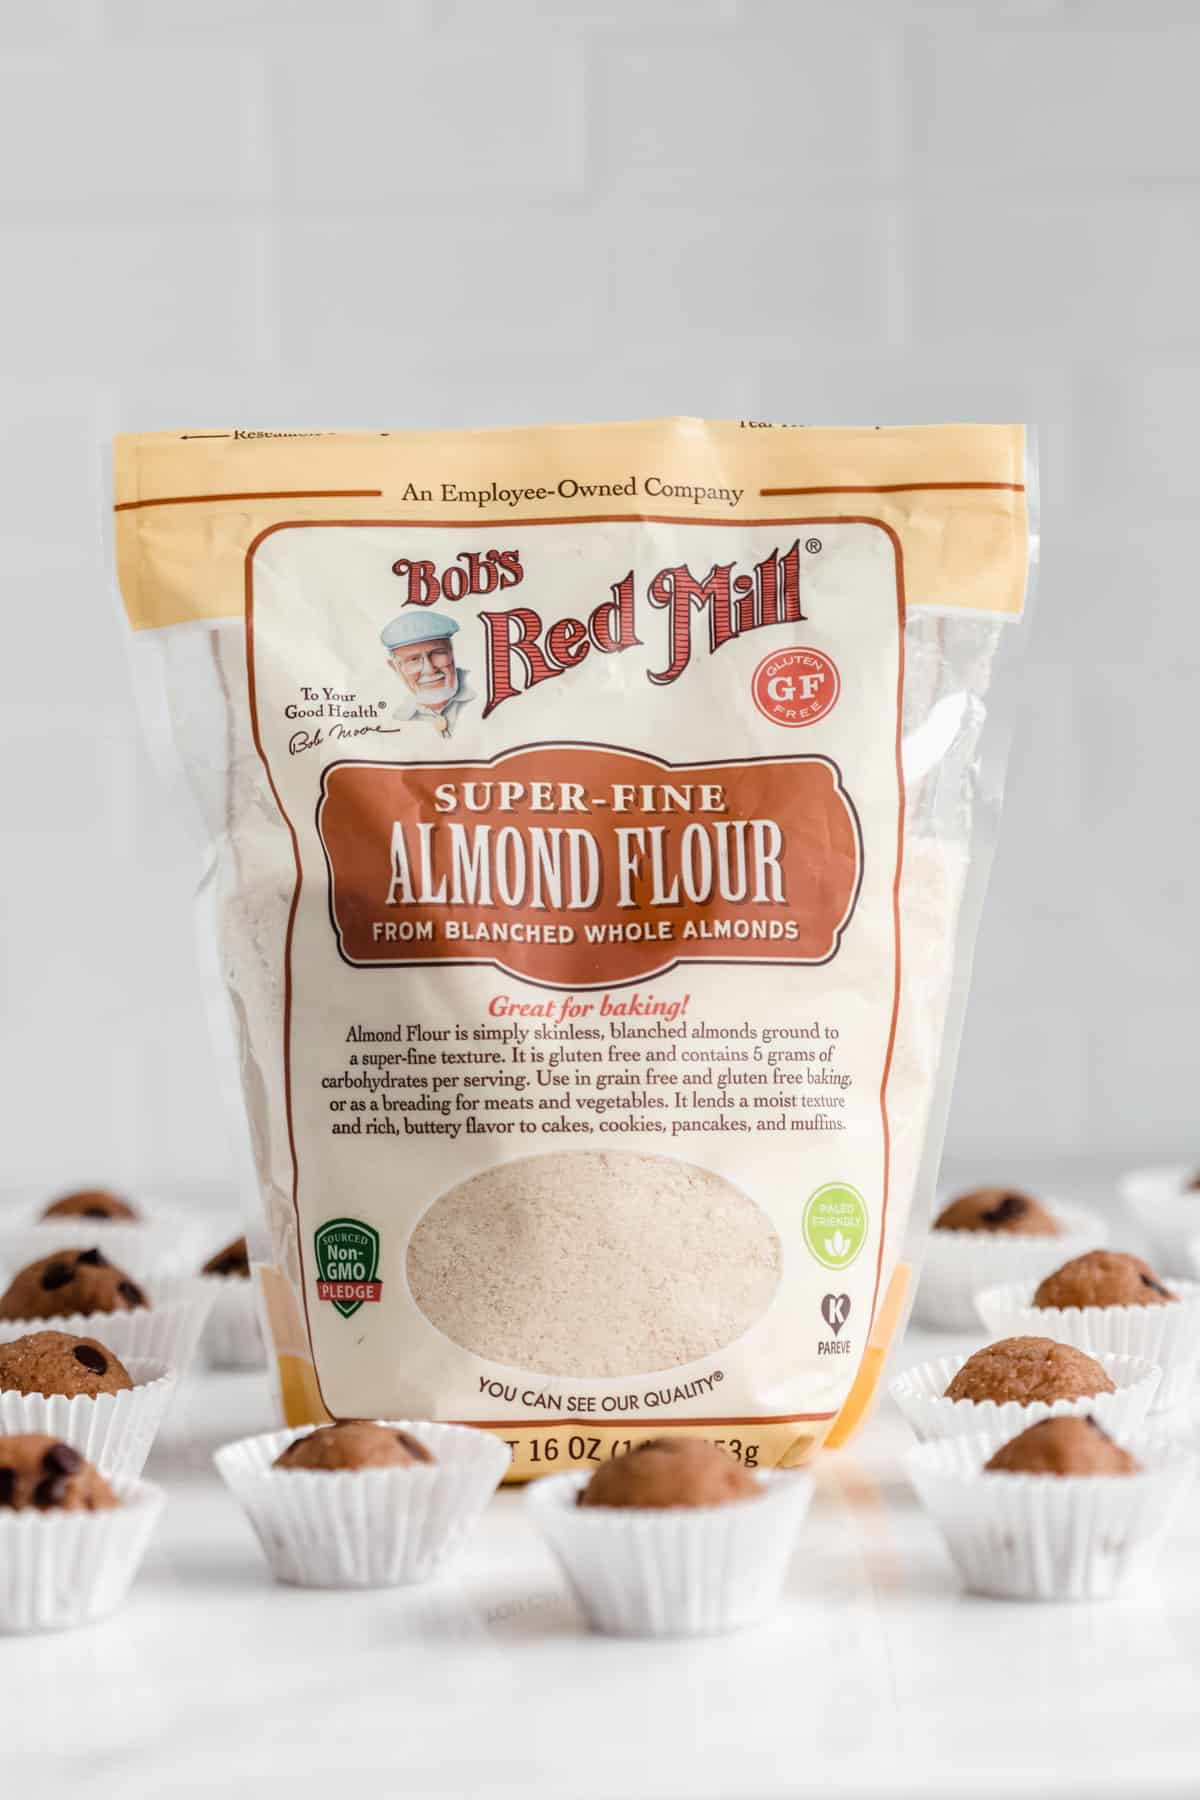 a pack of Bob's Red Mill Almond Flour on a counter